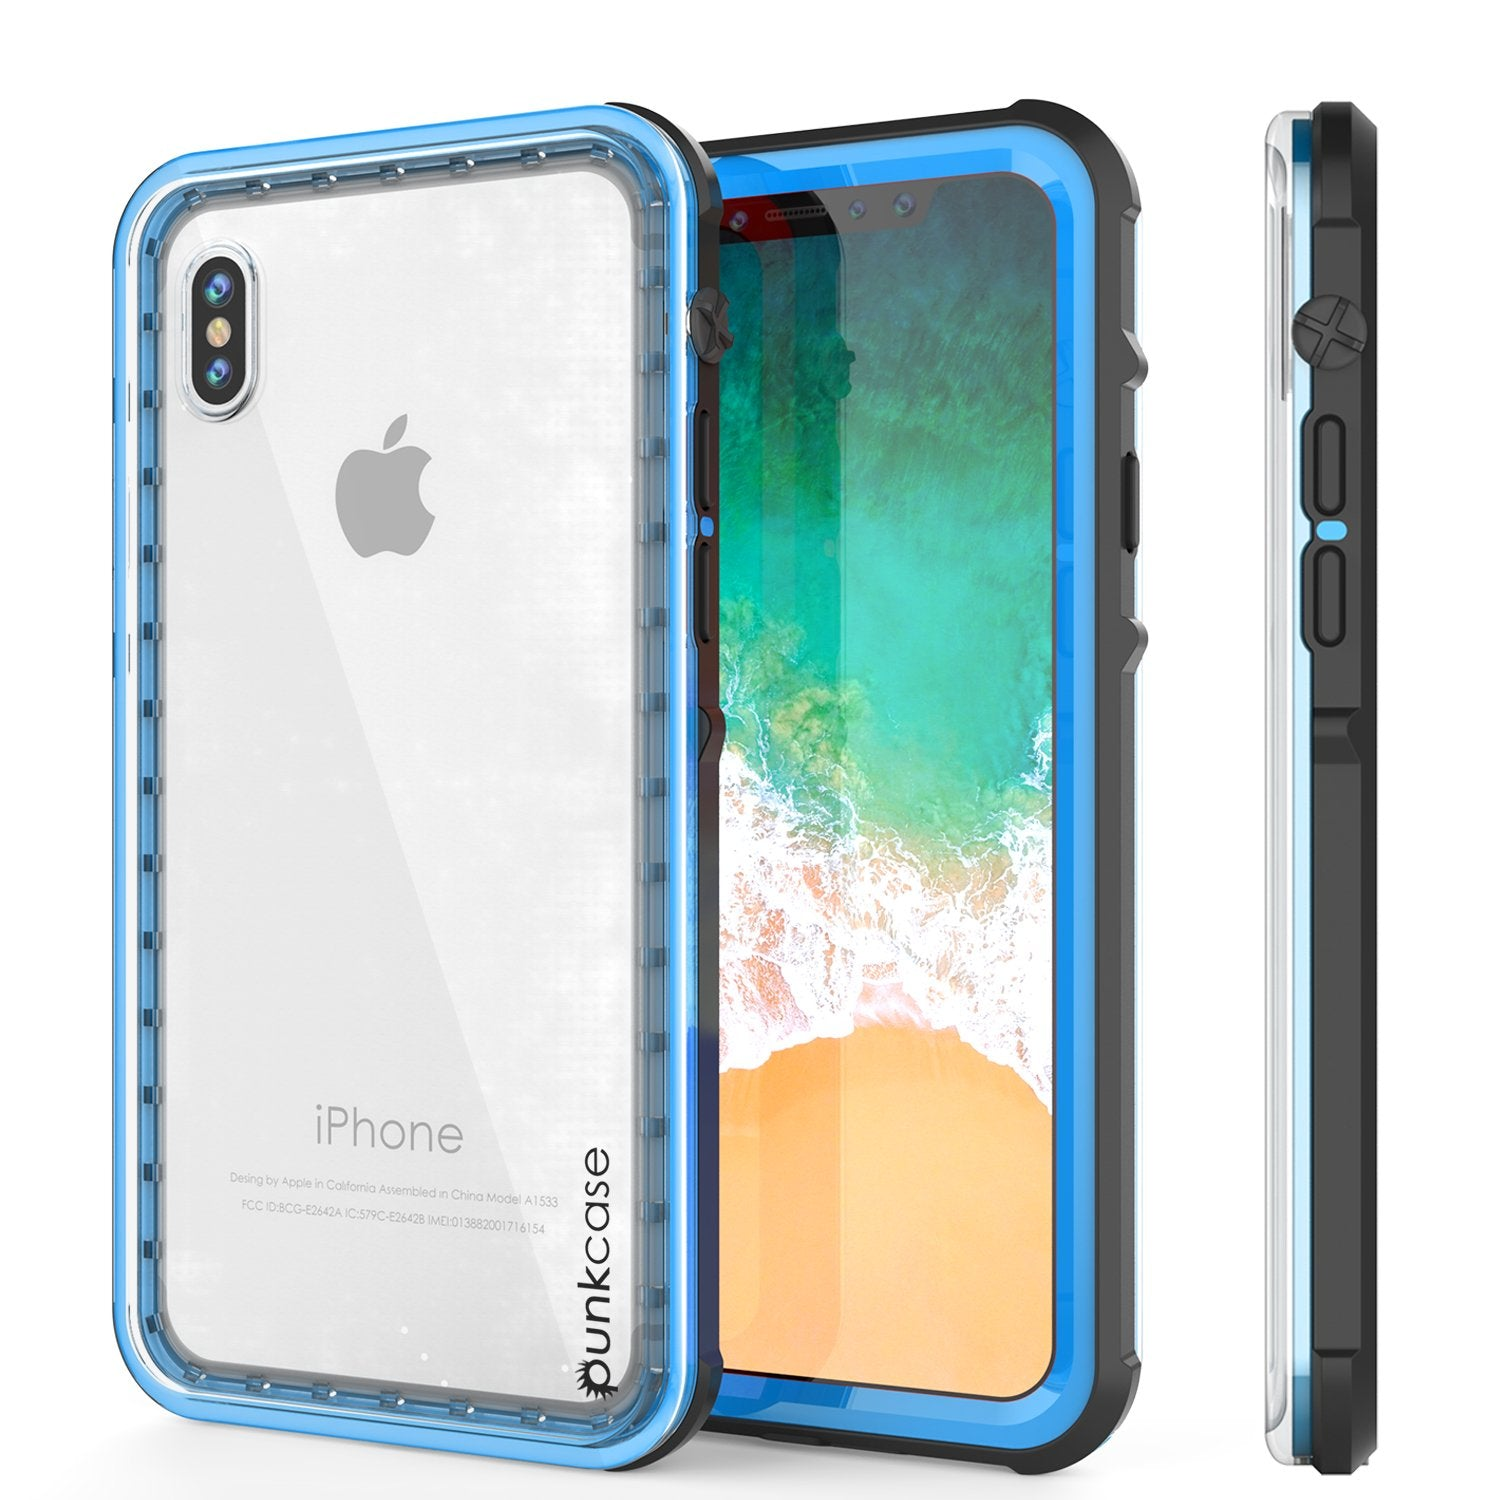 iPhone XS Max Case, PUNKCase [CRYSTAL SERIES] Protective IP68 Certified Cover [Light Blue]